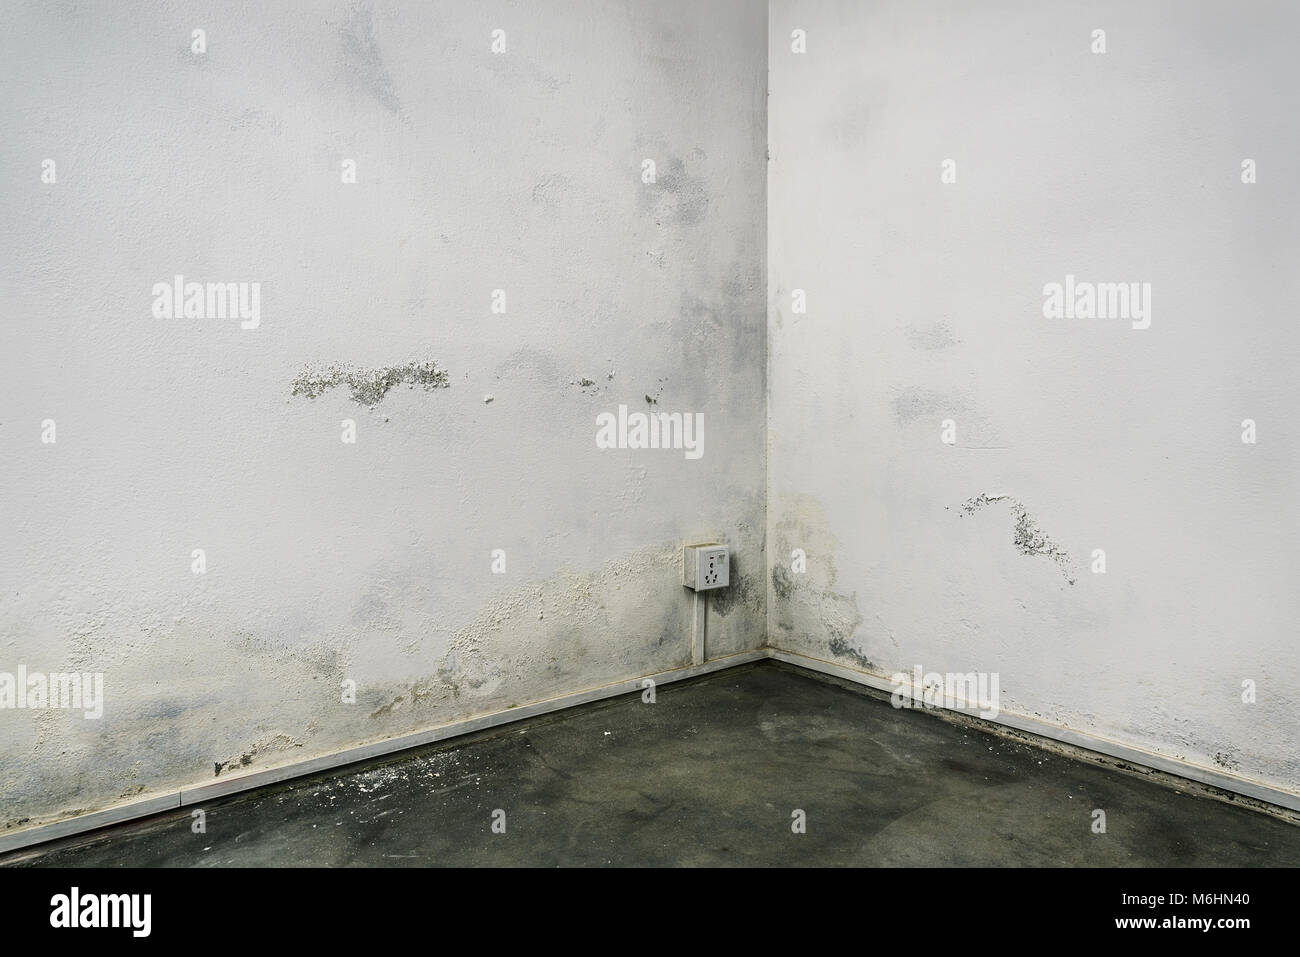 Grungy room corner with concrete floor and white walls damaged by damp - Stock Image